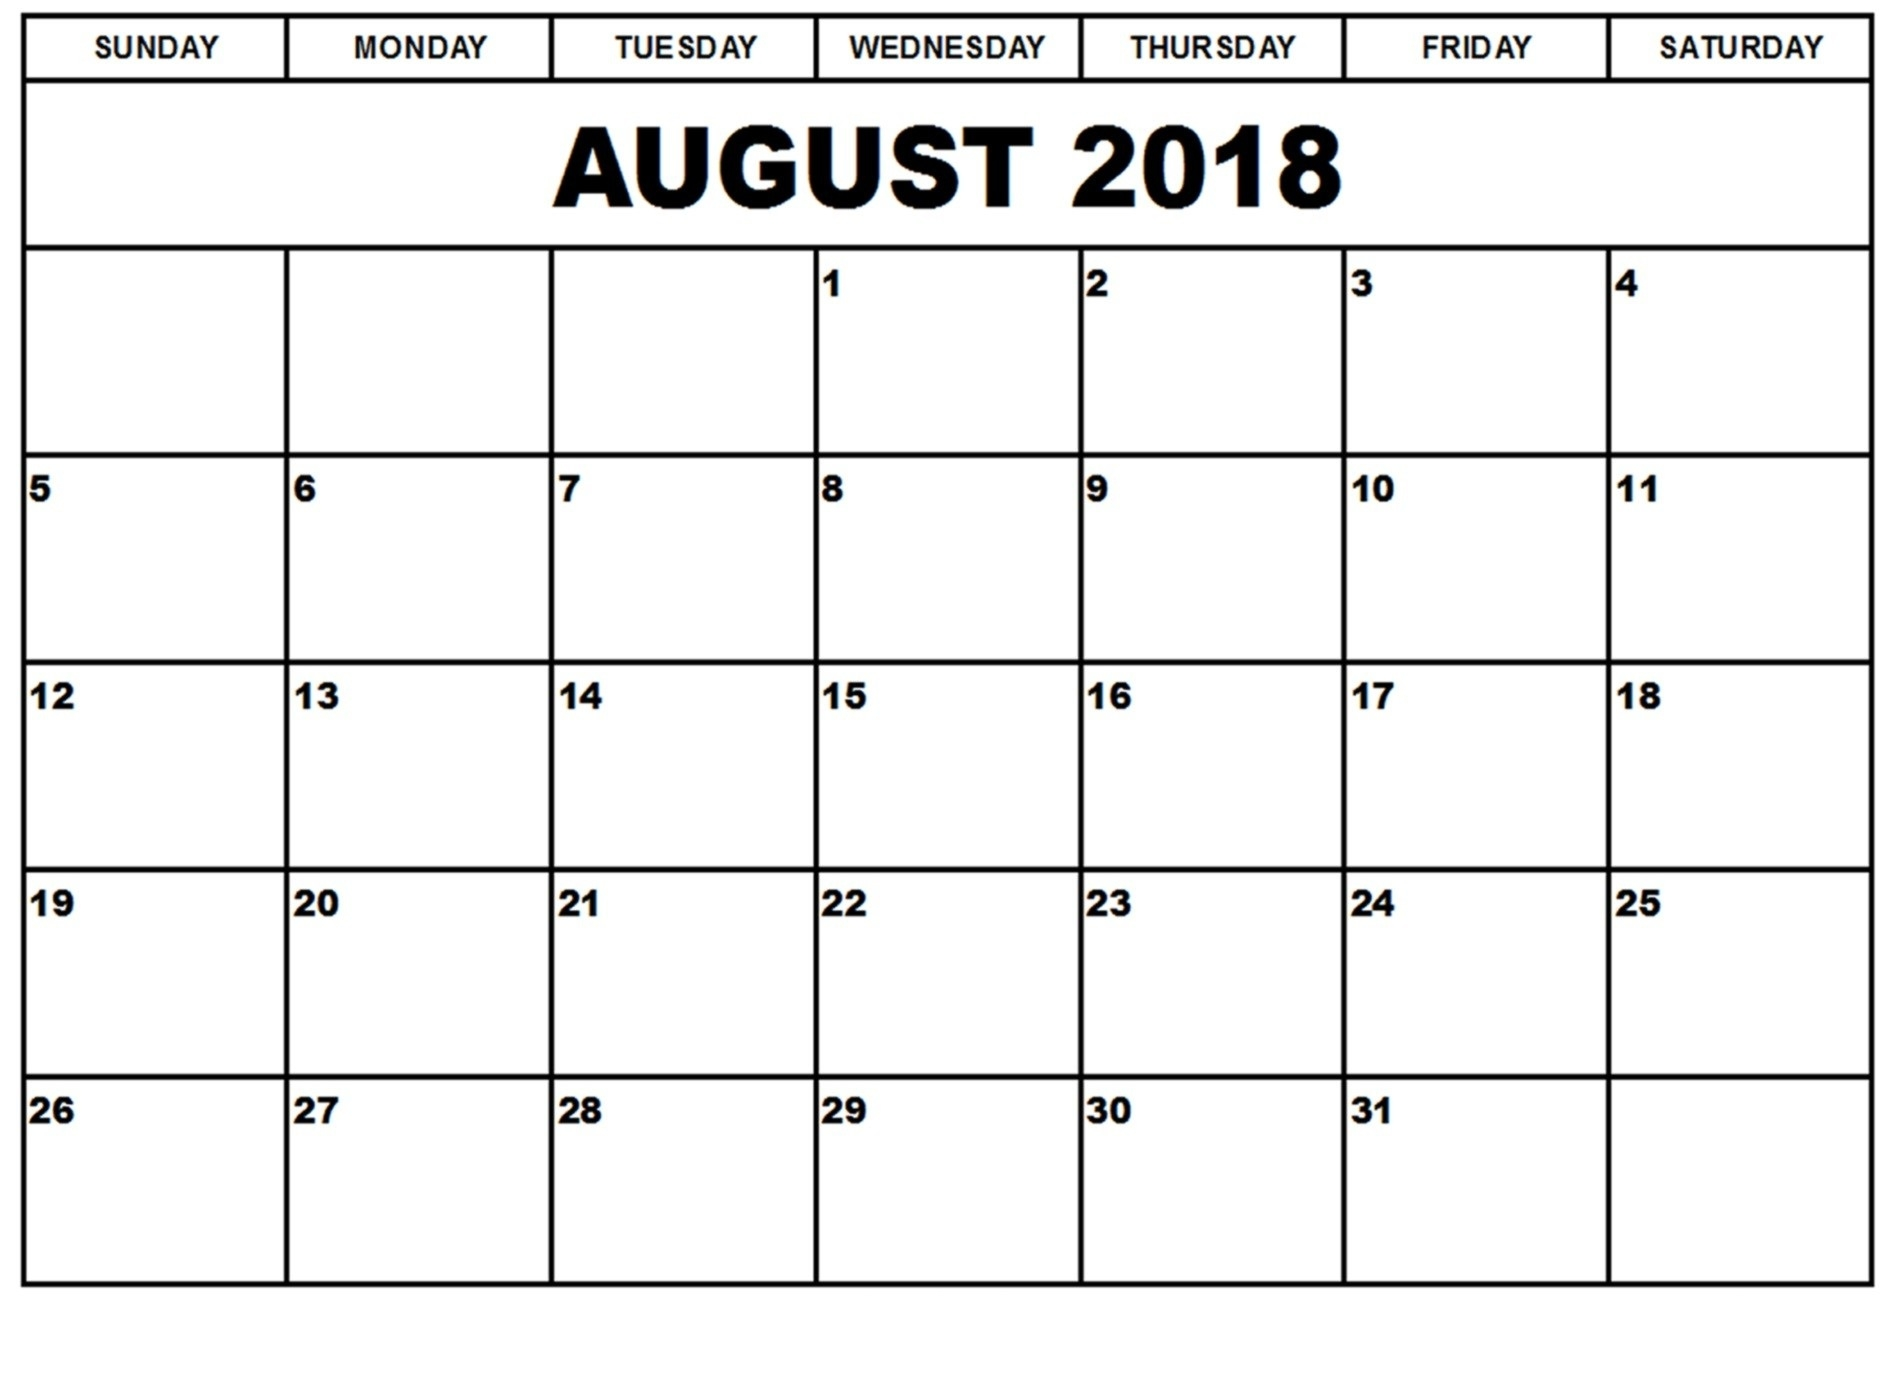 printable august 2018 blank calendar day printable calendar Calendar August 2018 Printable Worksheets erdferdf